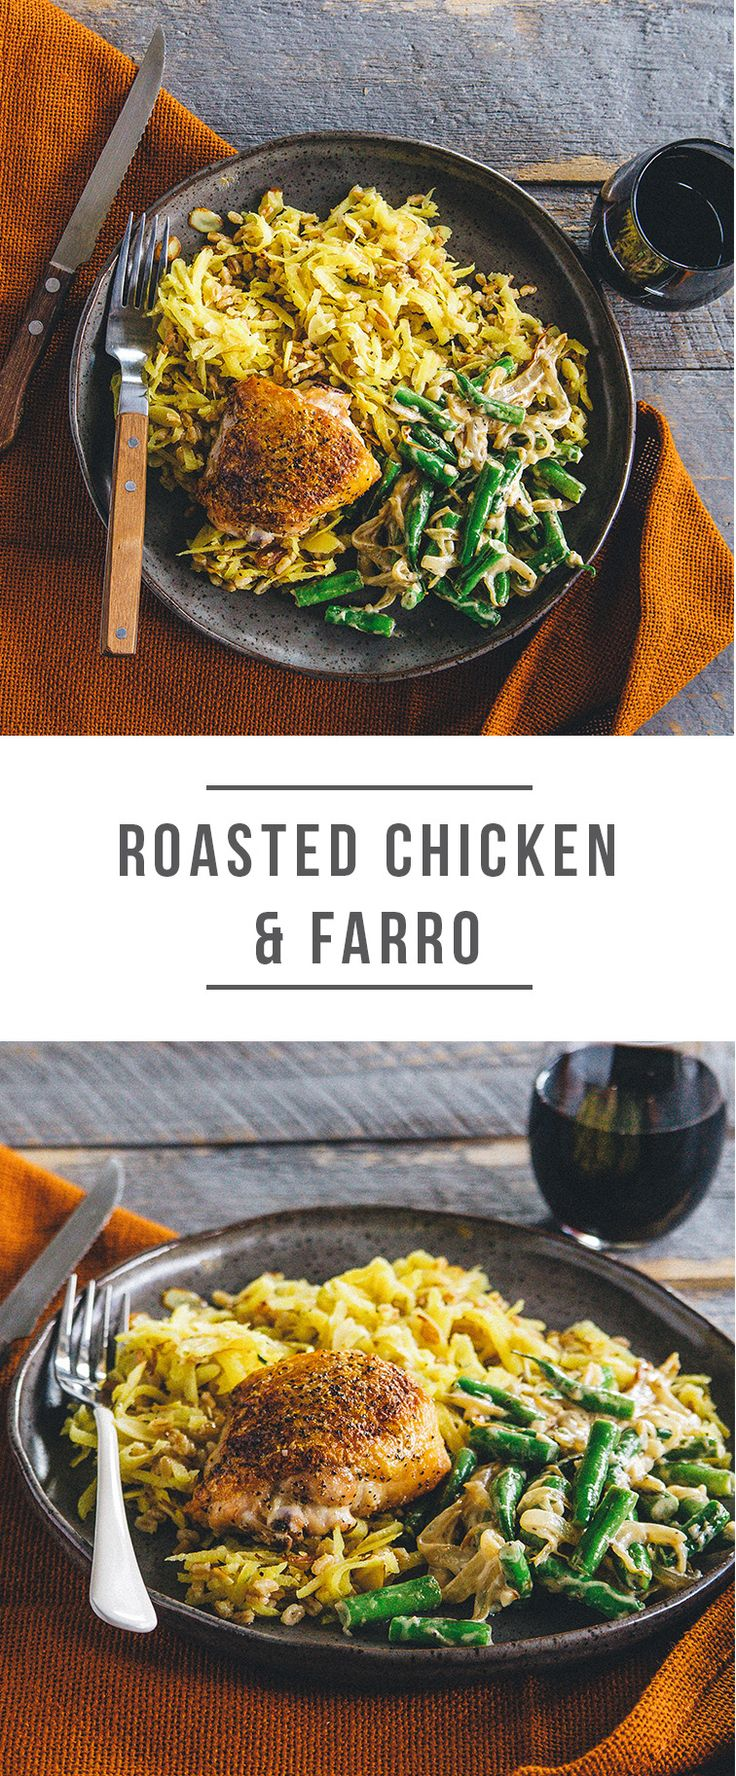 Roasted Chicken and Farro, Americana comfort, lightened up. Recipe: https://greenchef.com/recipes/crispy-chicken-thighs-with-farro-beet-salad-and-creamy-green-beans?utm_source=pinterest&utm_medium=link&utm_campaign=social&utm_content=chicken-farro